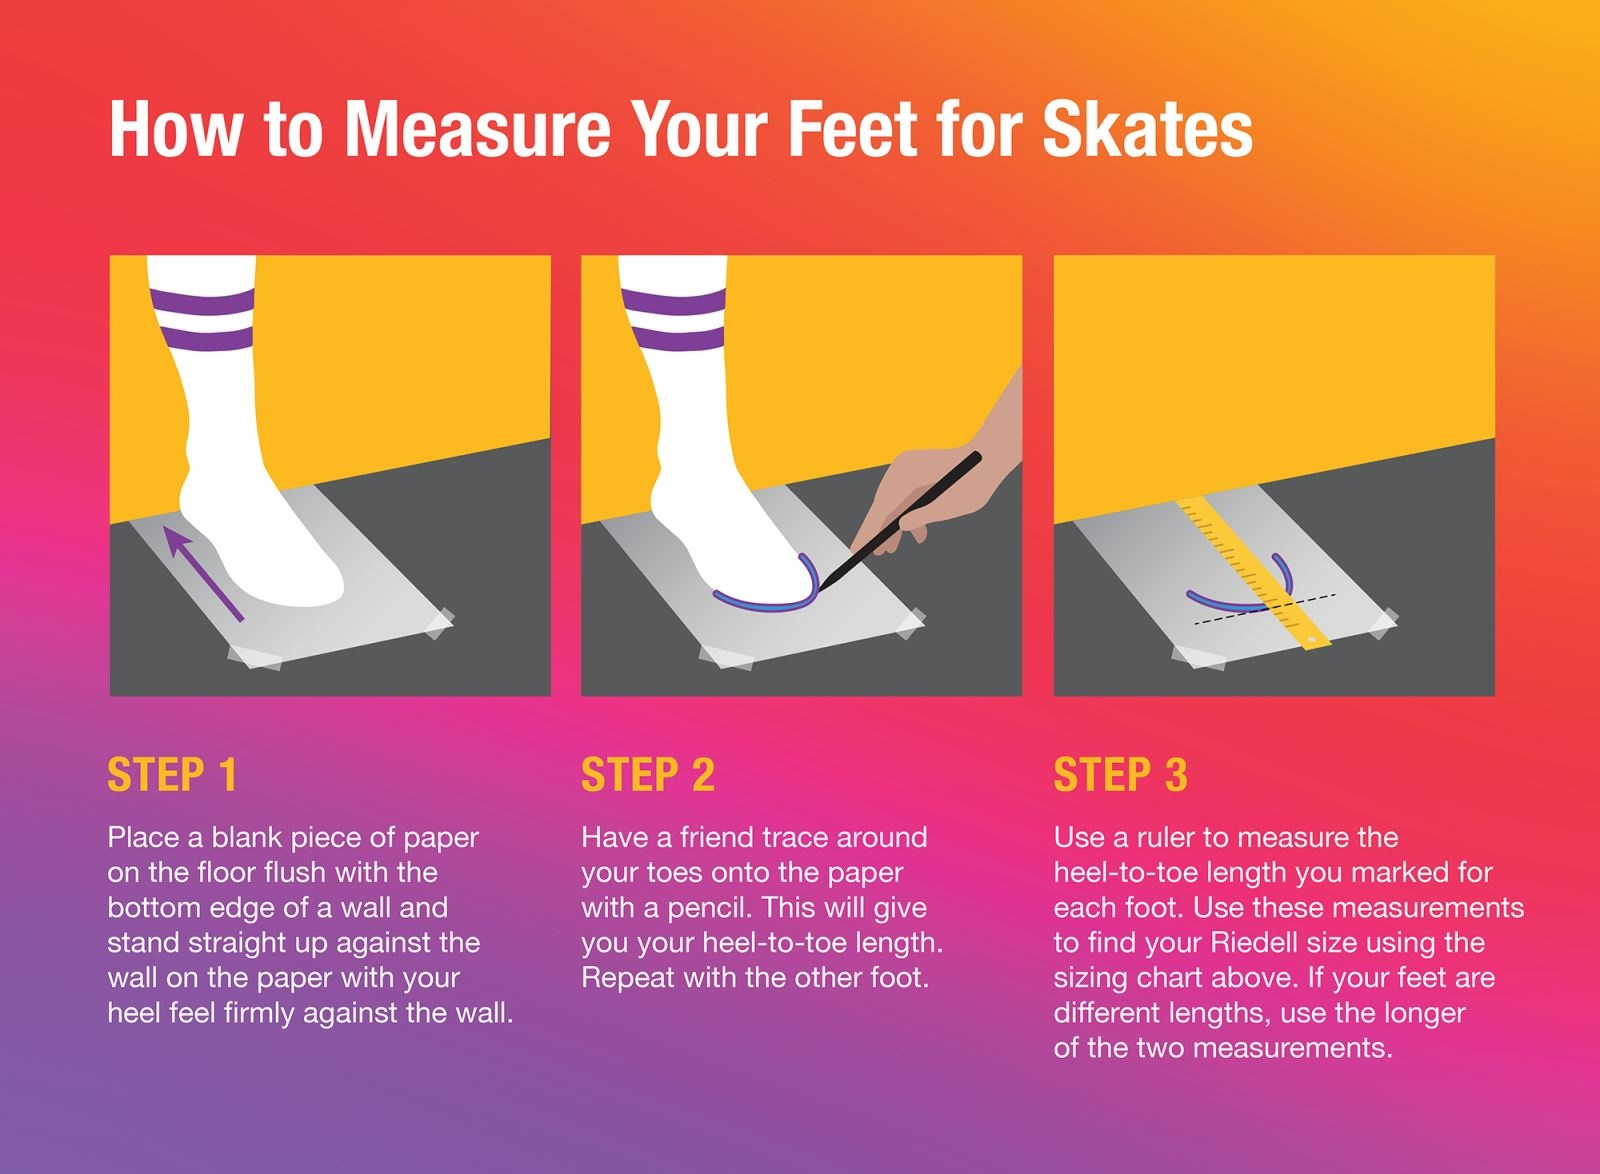 How to measure your feet for skates